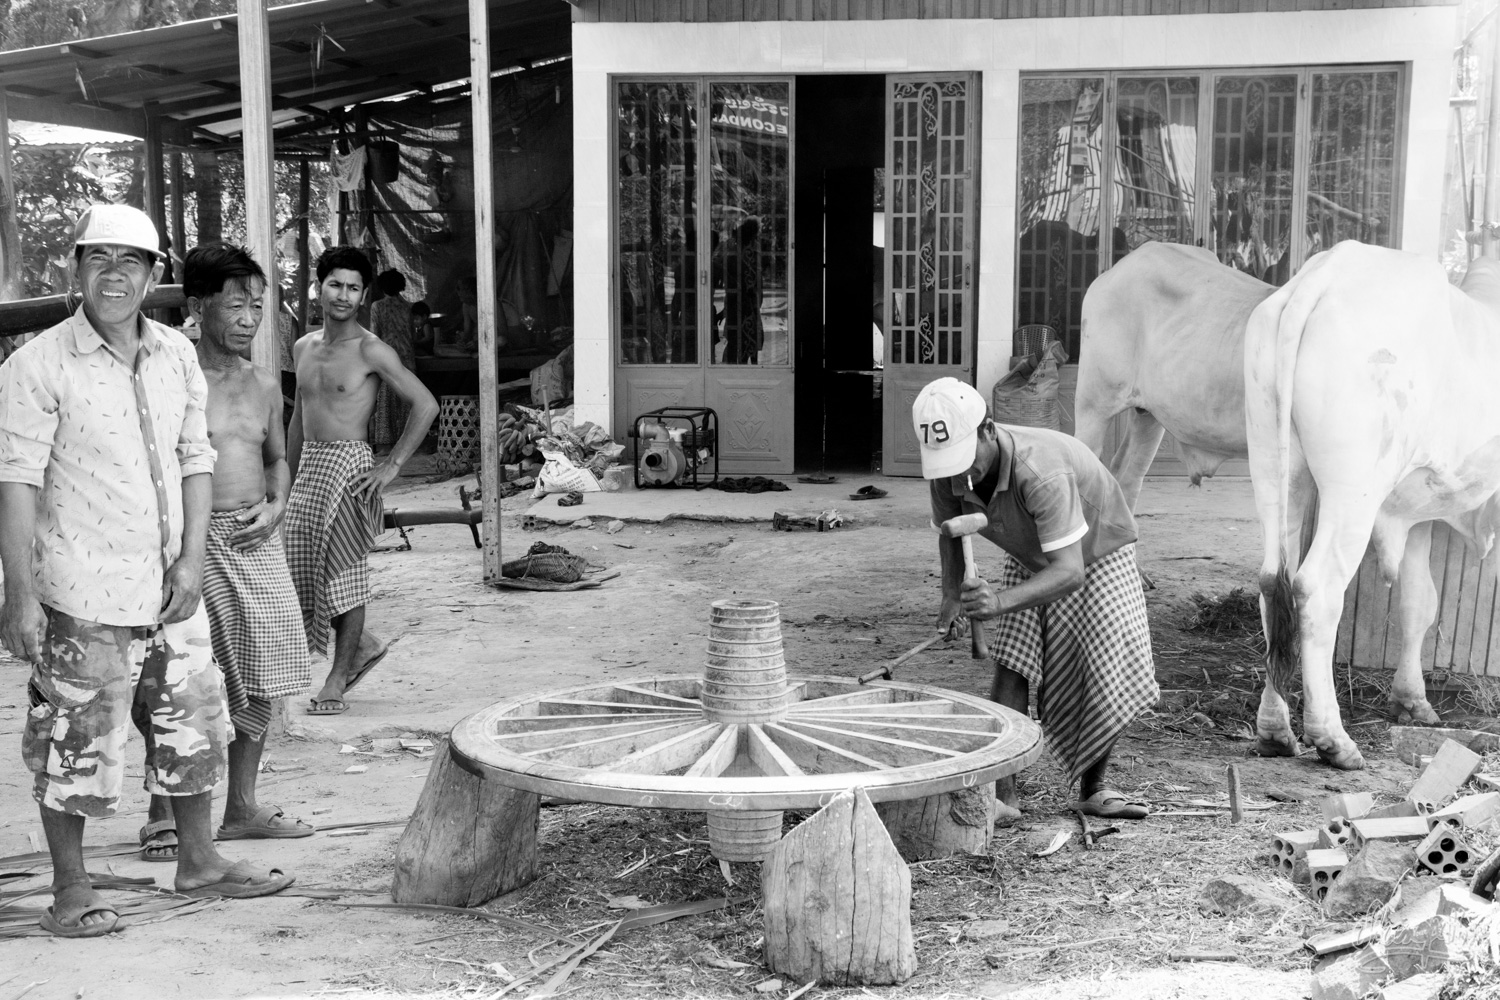 Reparing a oxcart wheel, a classic scene of the life along the Mekong in Cambodia